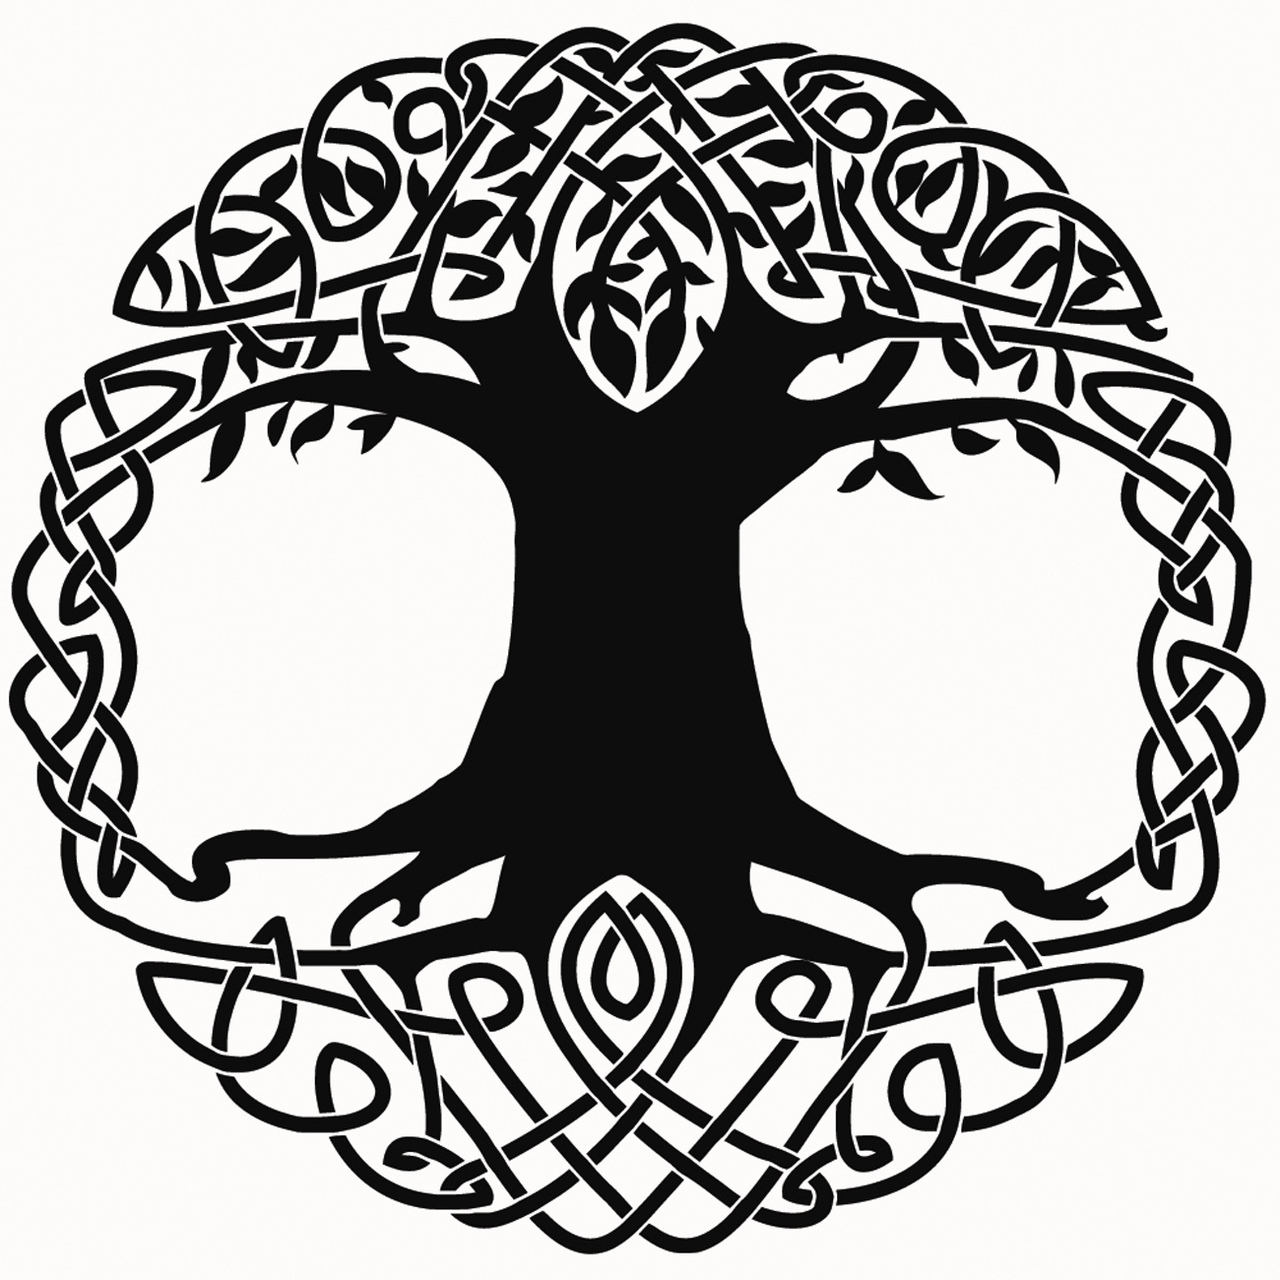 Tree Of Life Images Free | Free download best Tree Of Life Images ... svg black and white